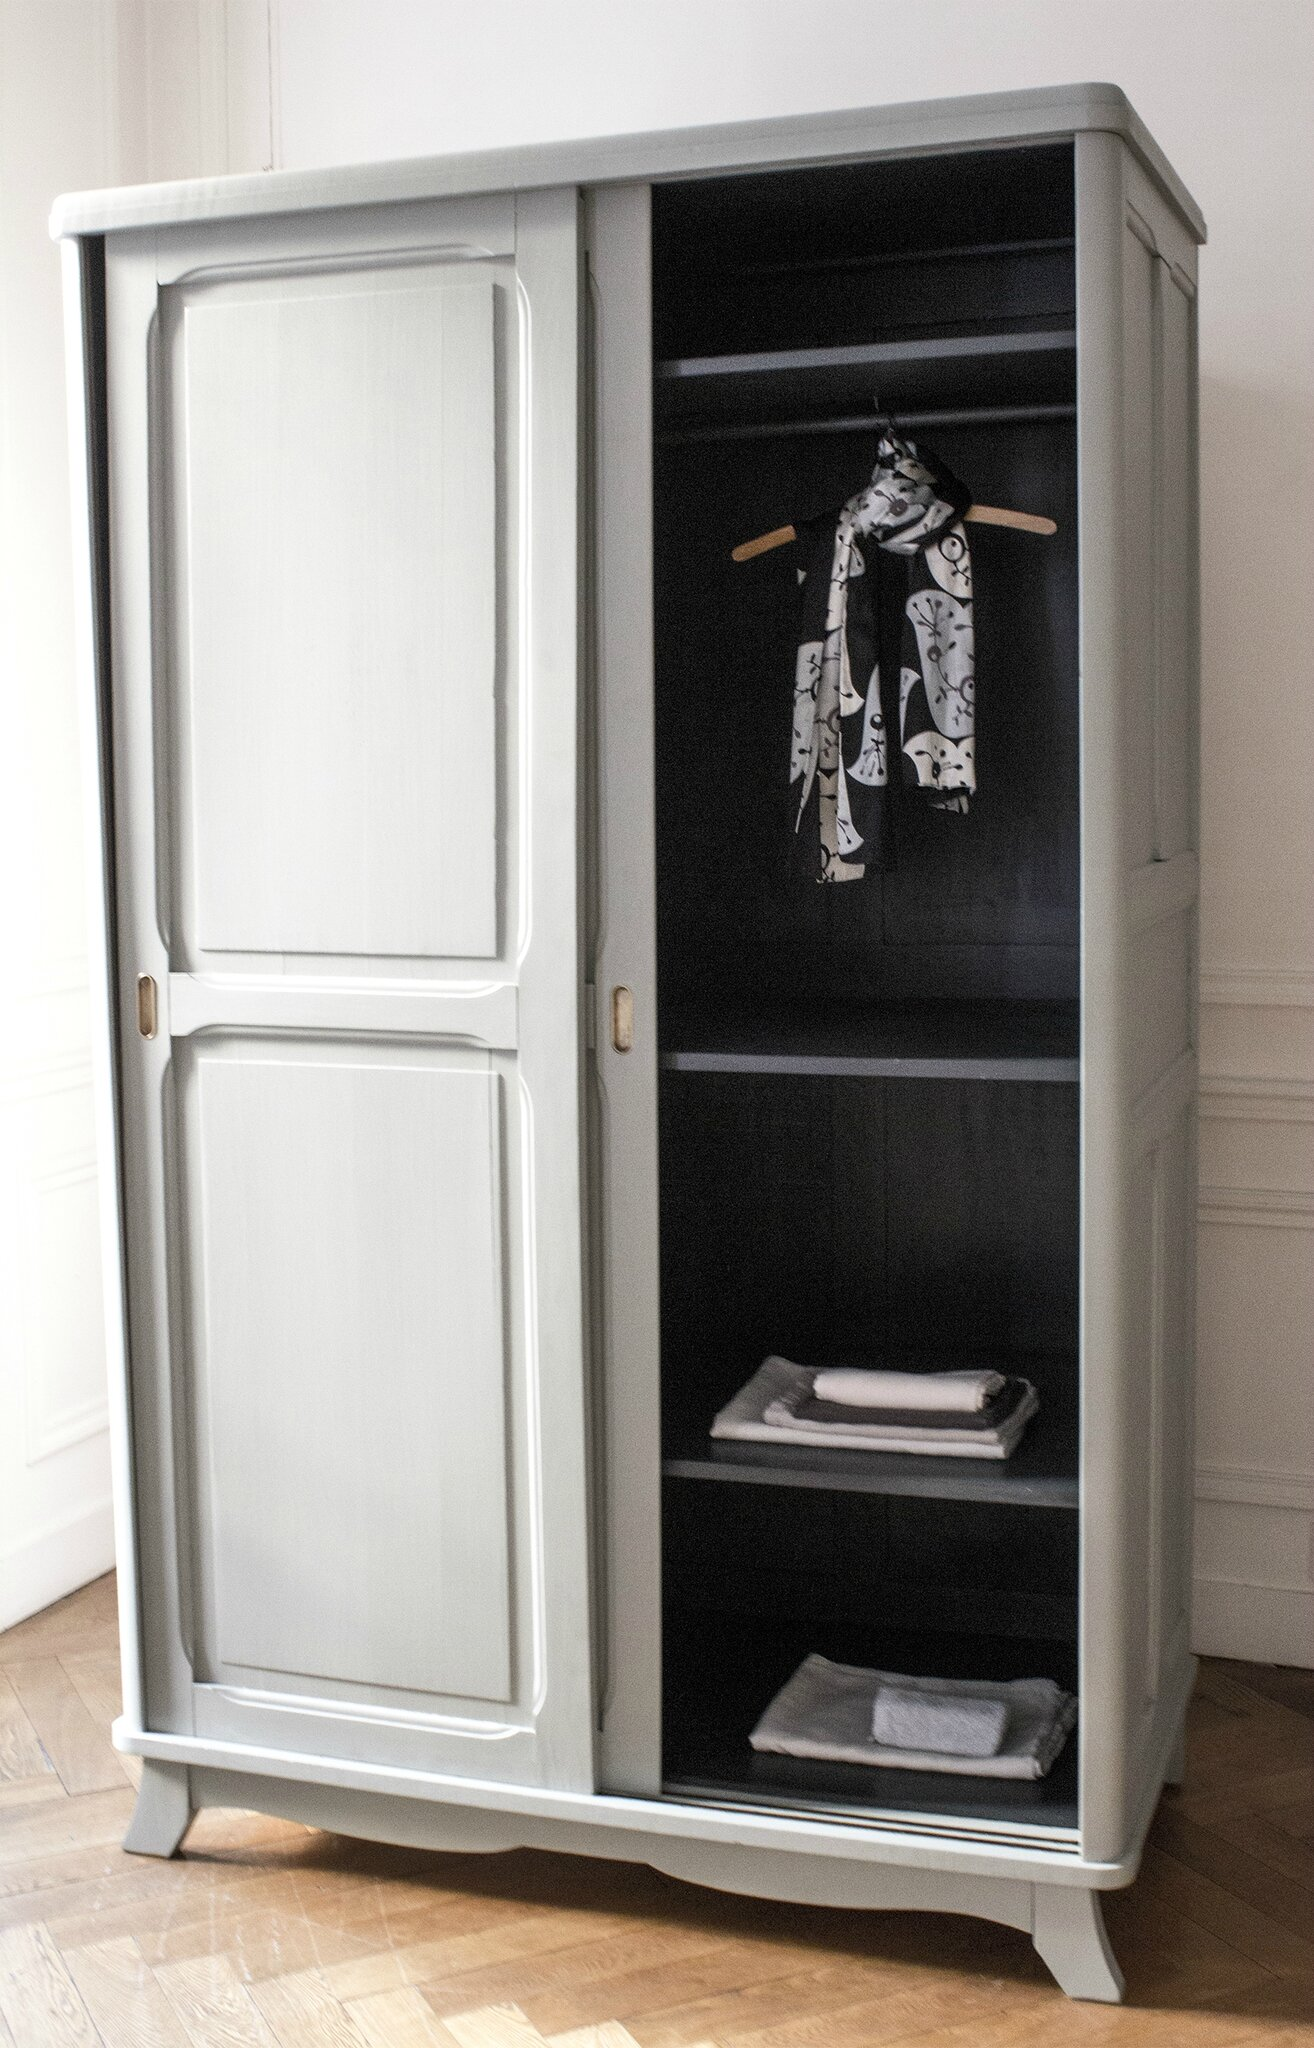 #876444 TRENDY LITTLE 945 armoire porte coulissante pin 1314x2048 px @ aertt.com